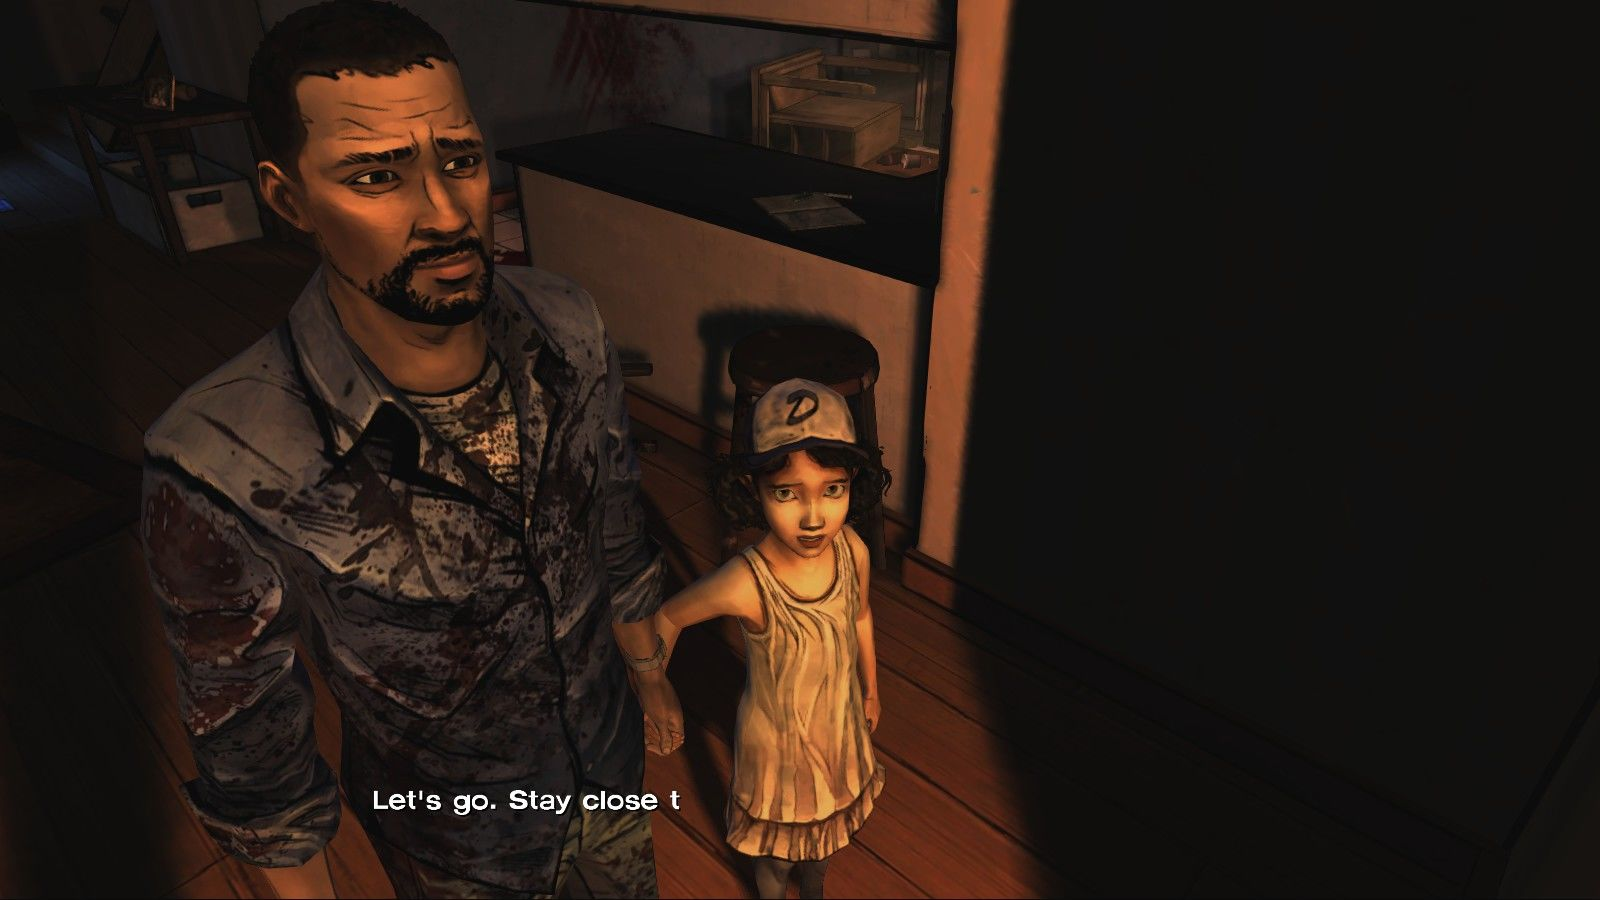 The Walking Dead Windows Episode 1 - Meeting Clementine, a little girl you'll have to protect.